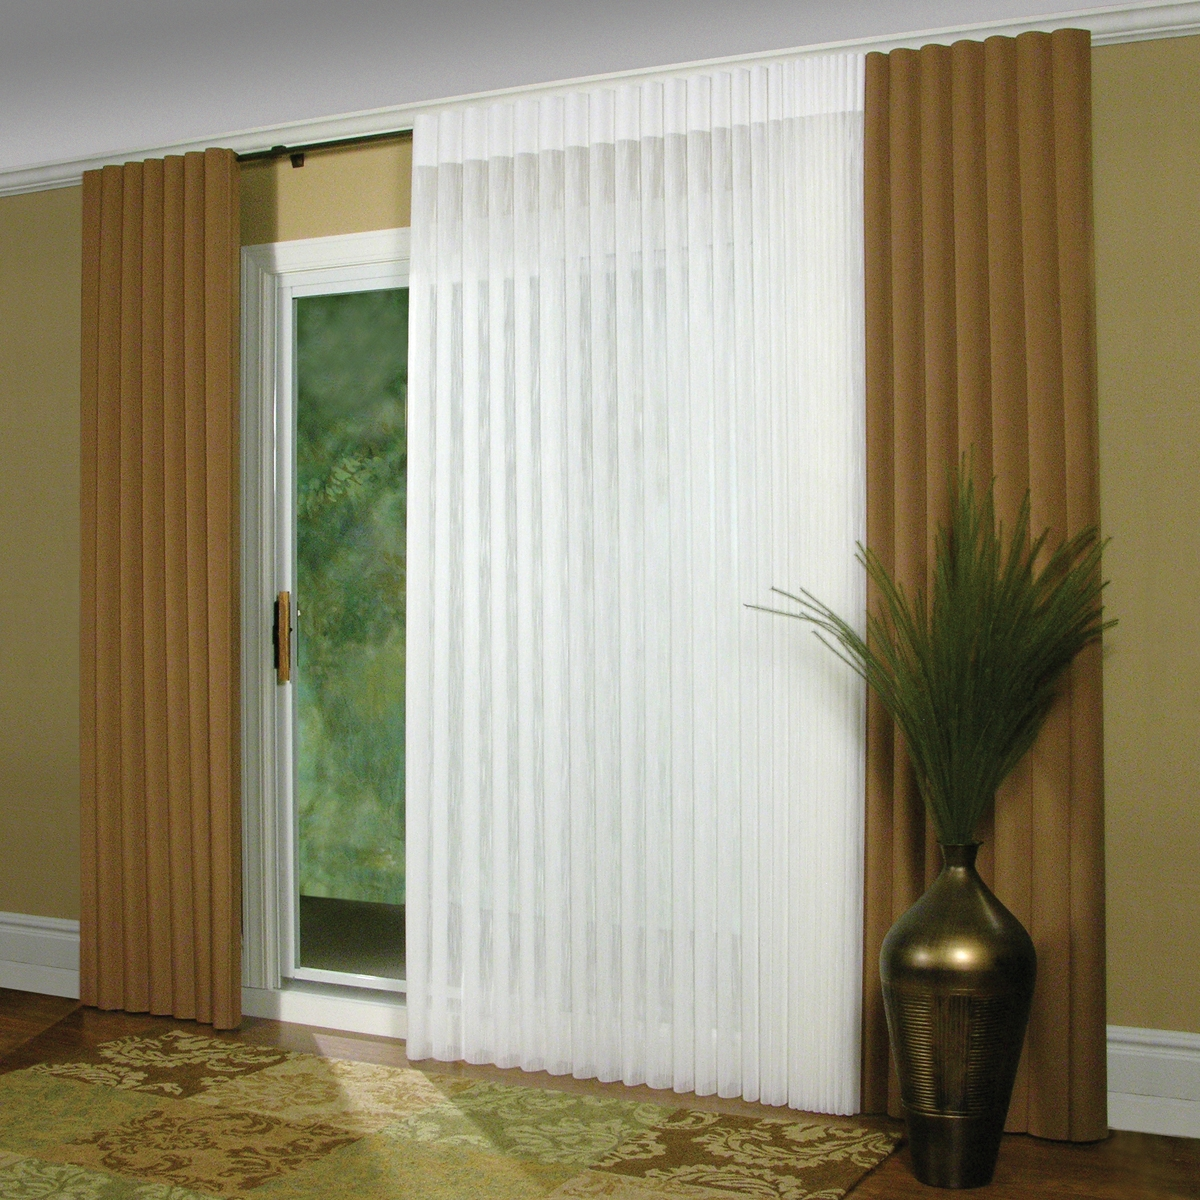 Insulated Vertical Blinds For Sliding Glass Doors1200 X 1200